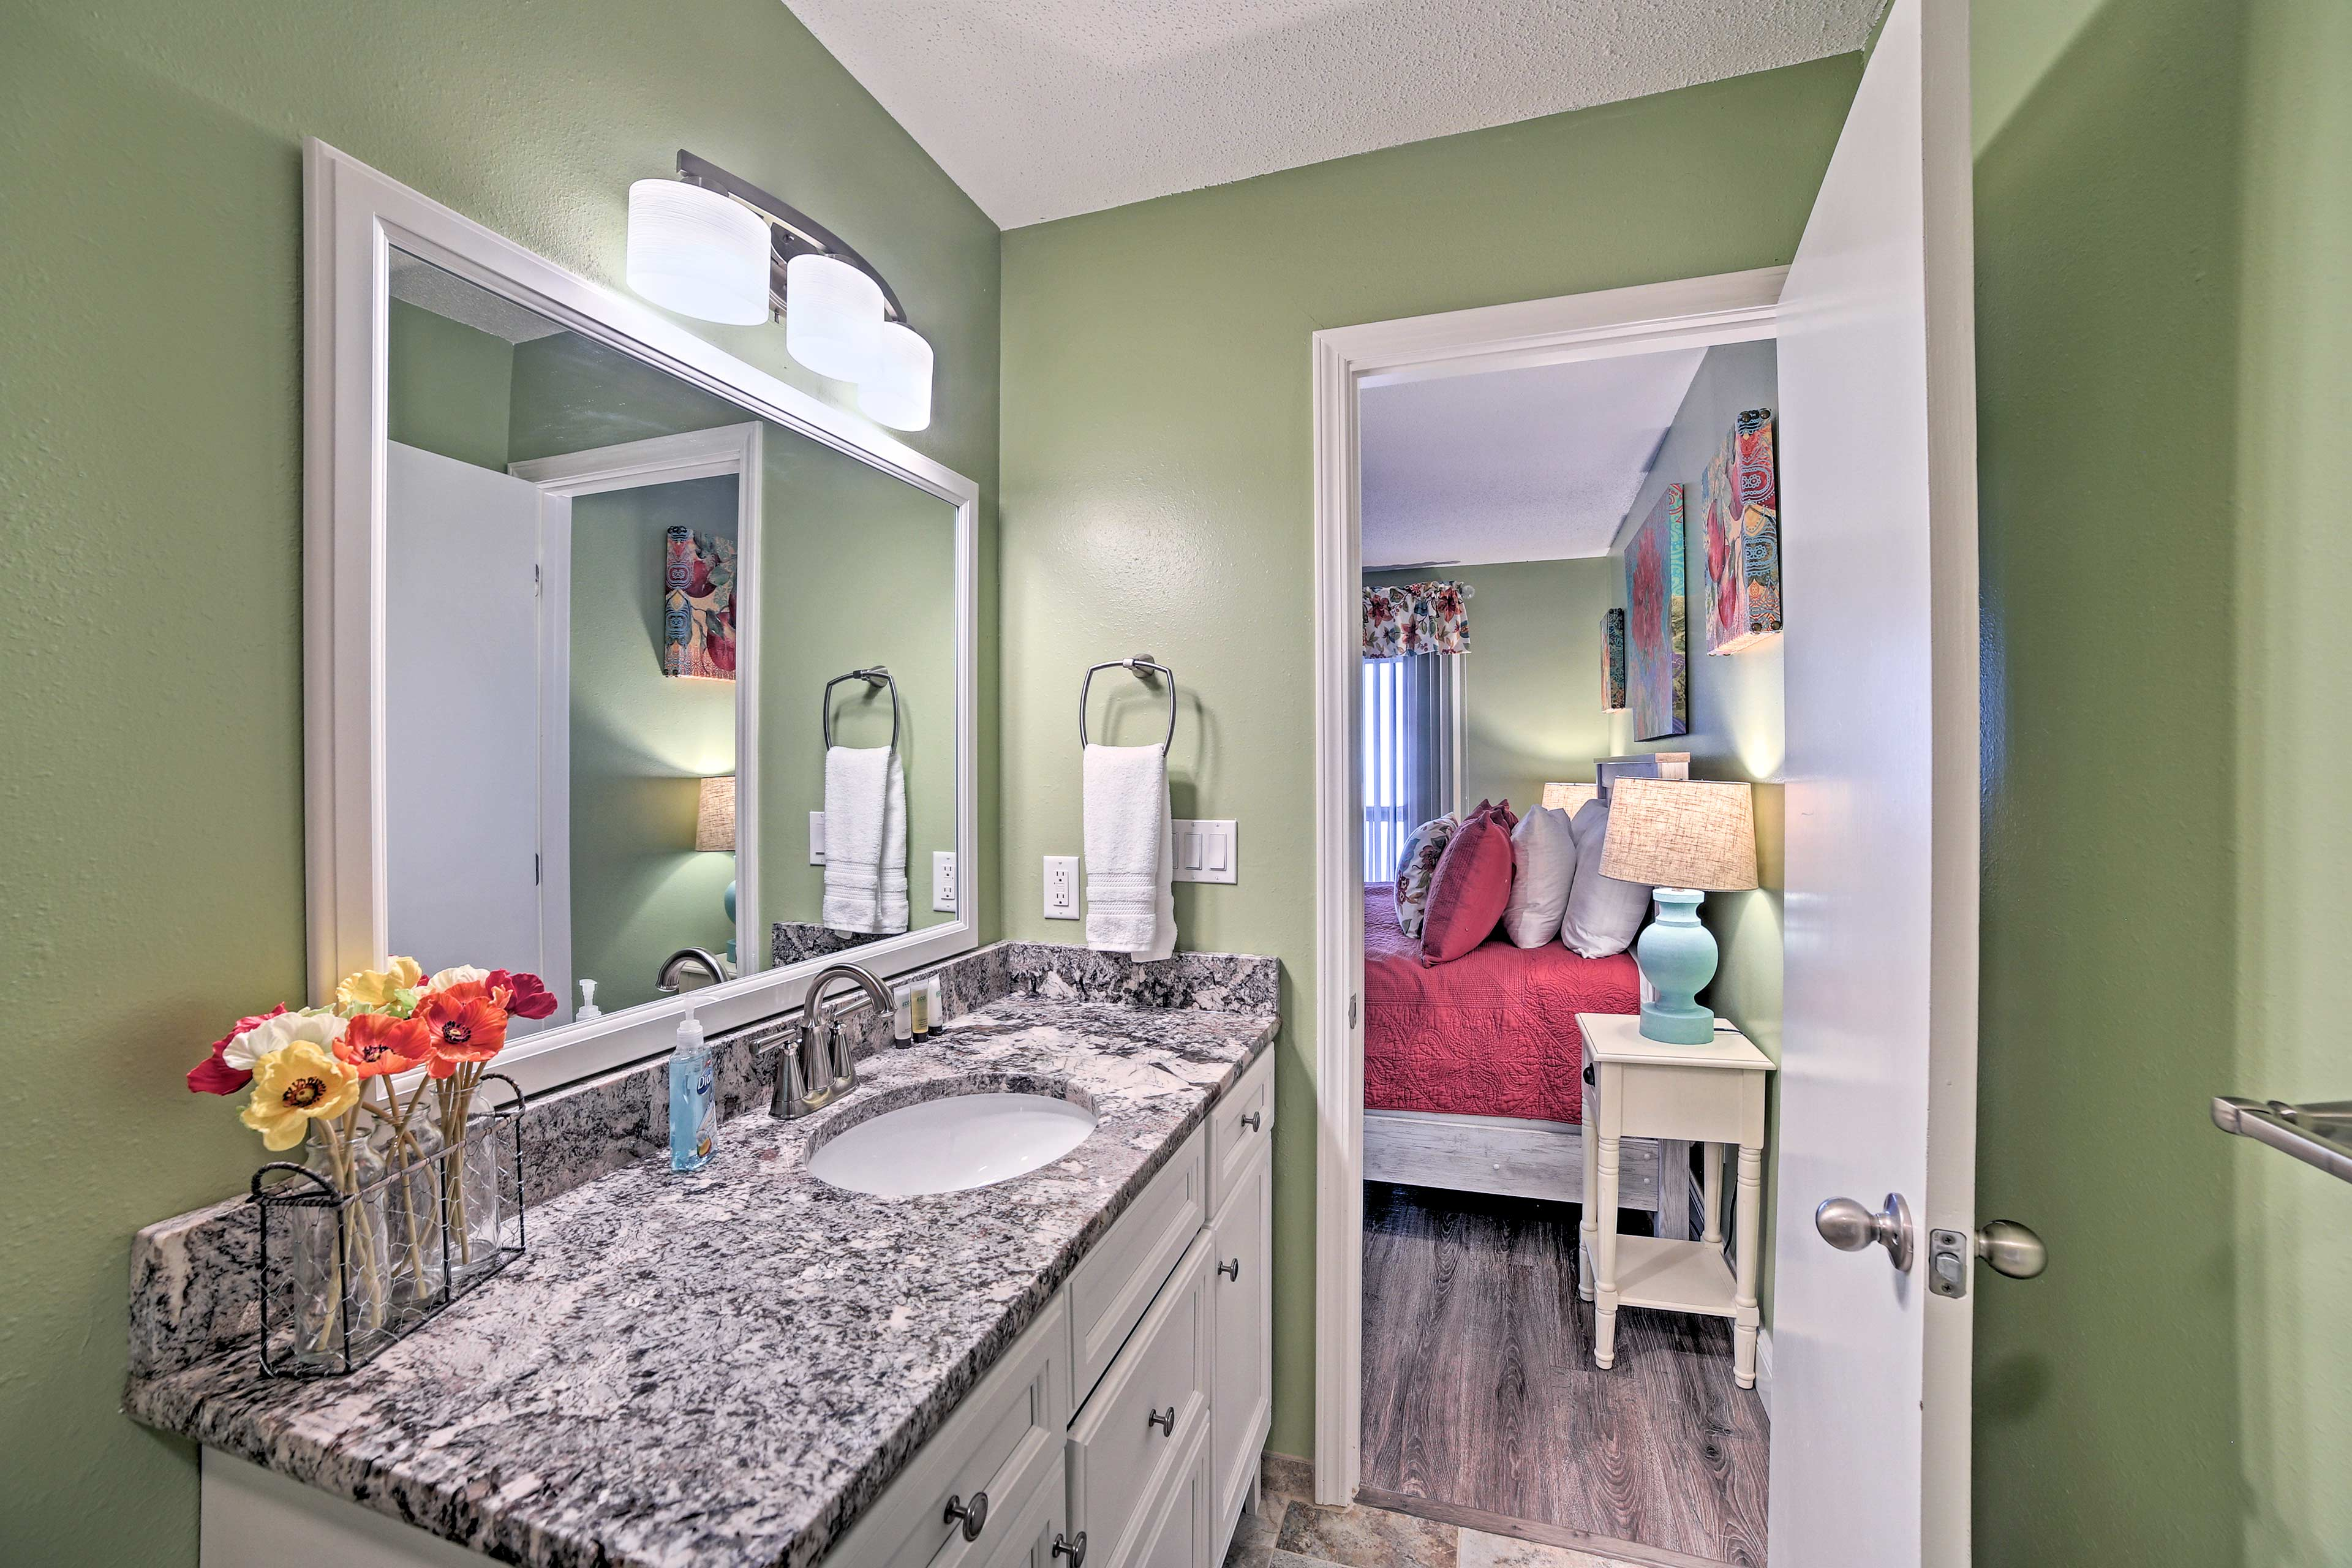 Morning routines are easy with the en-suite bathroom.